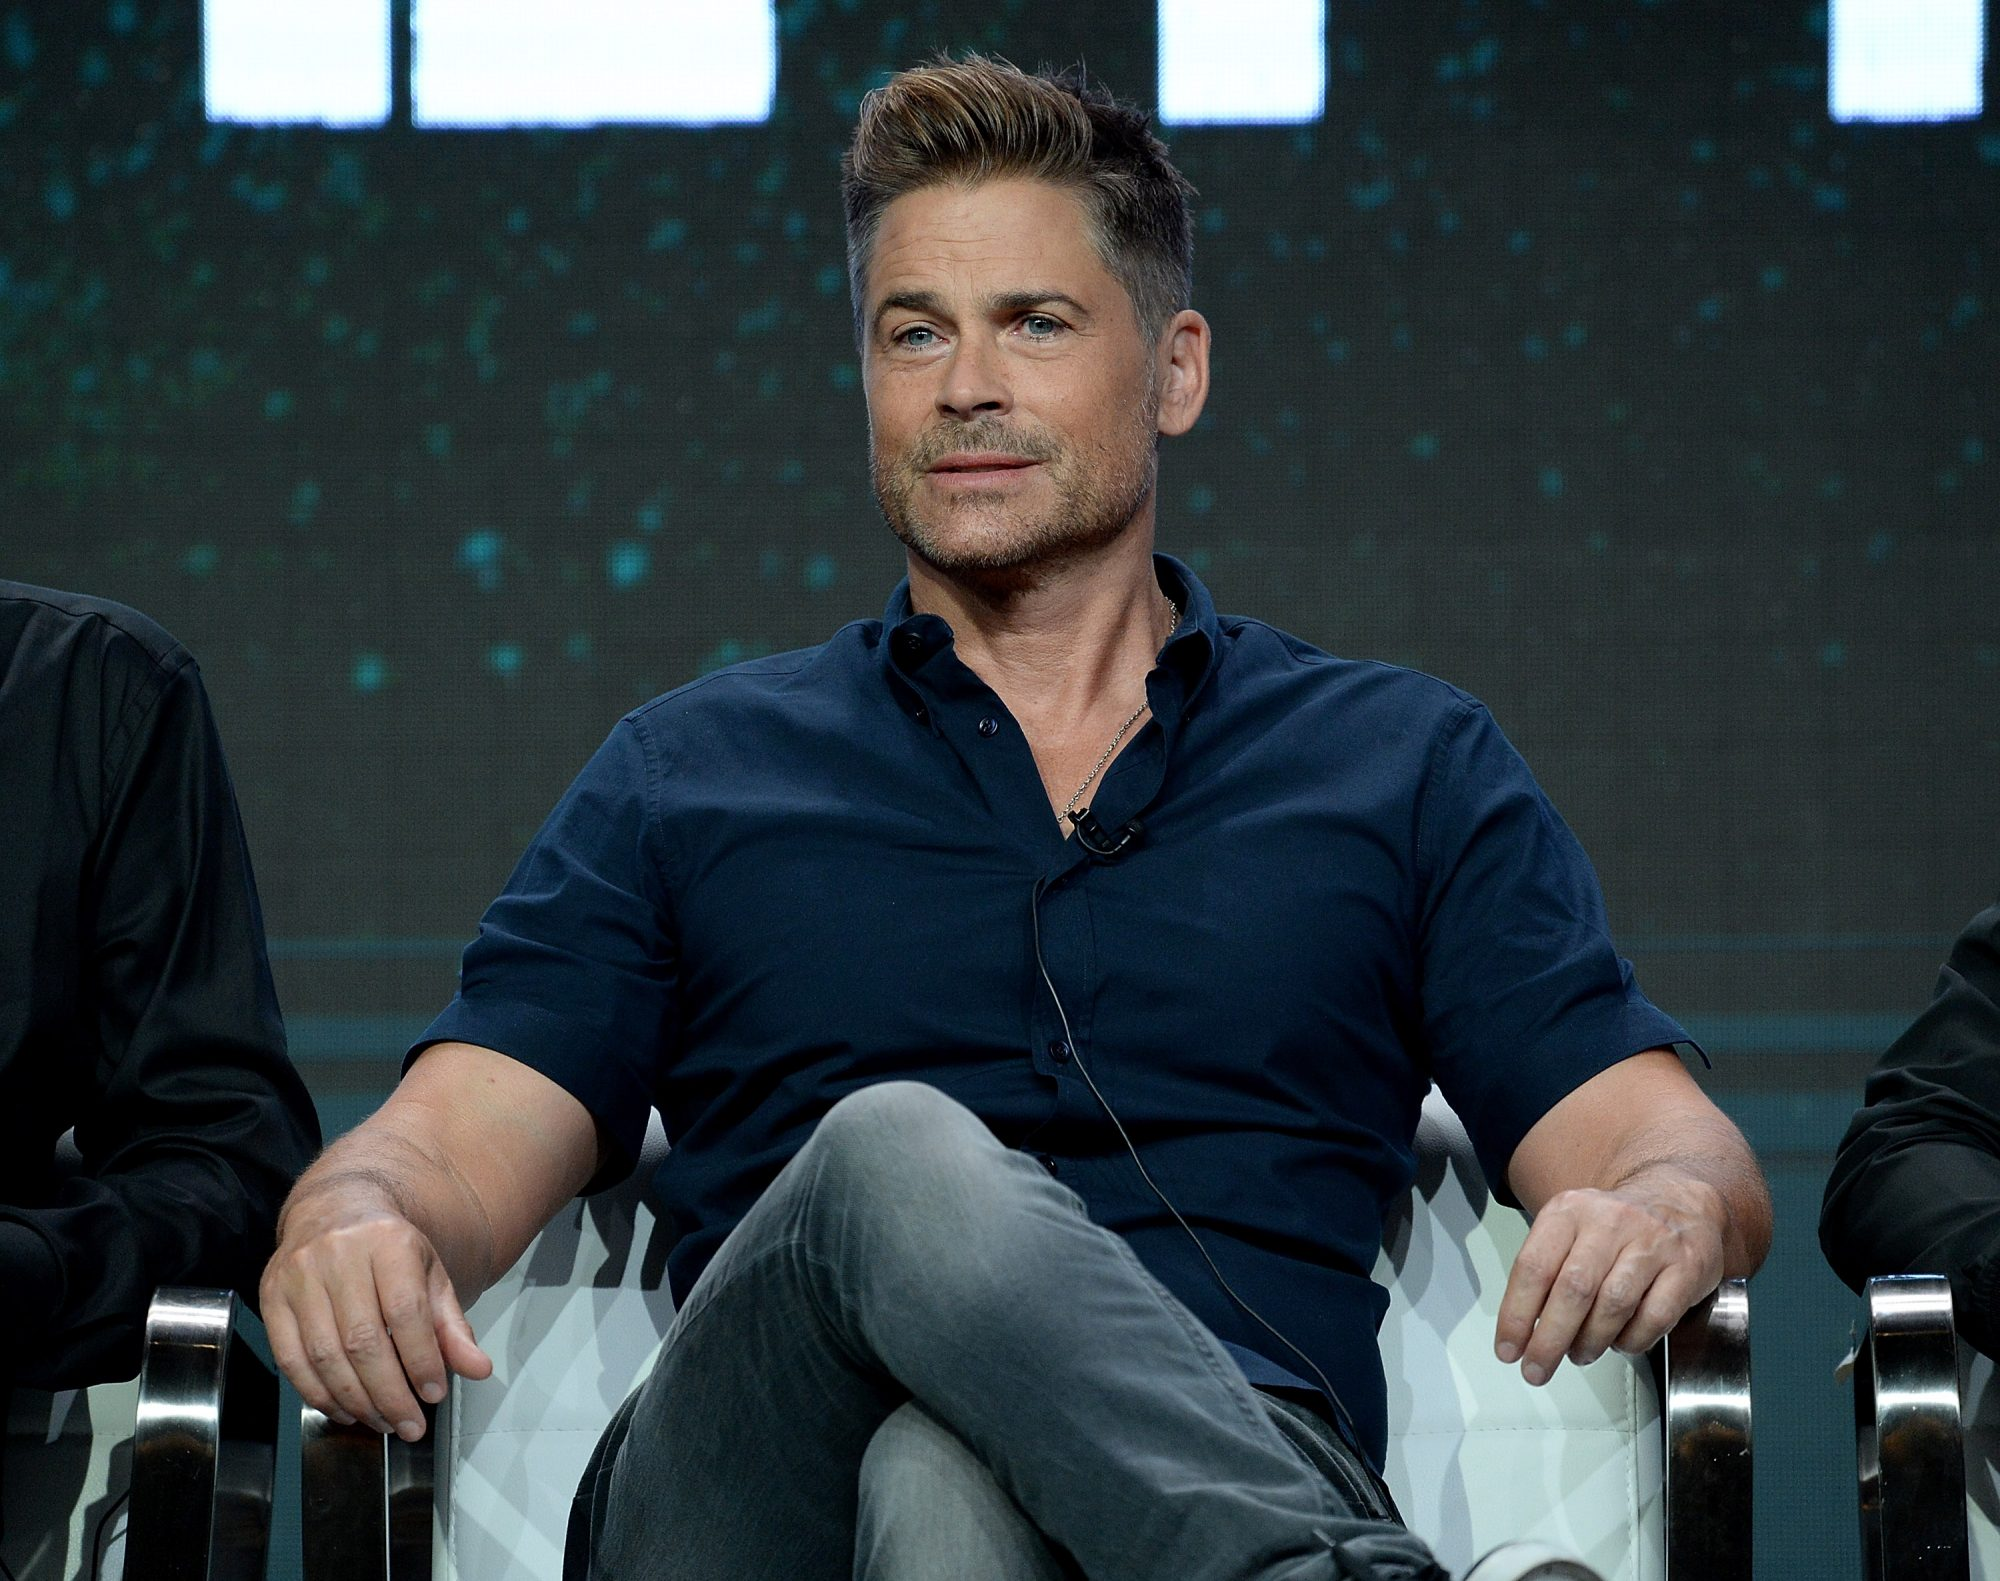 10-rob-lowe-celebrity-addiction